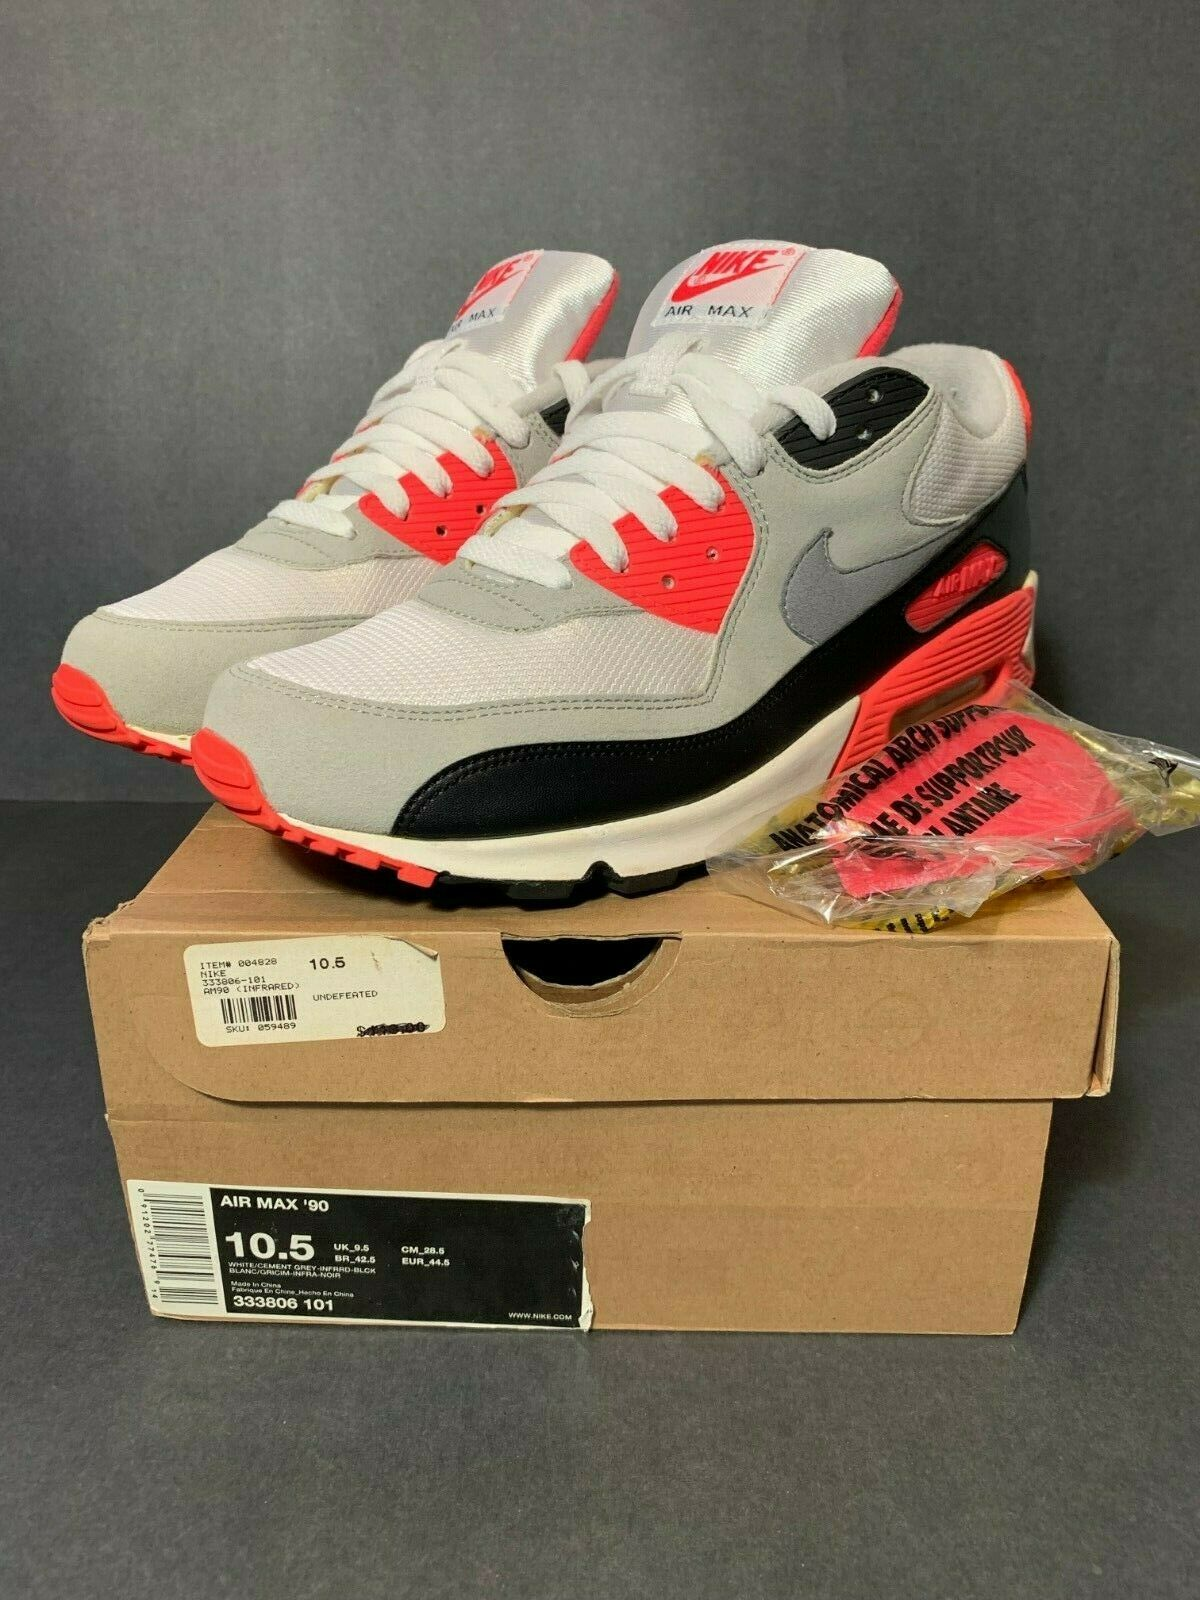 2008 NIKE AIR MAX 90 INFRARED SIZE 10.5 LASER HUF QS OG UNDEFEATED KID ATMOS 10